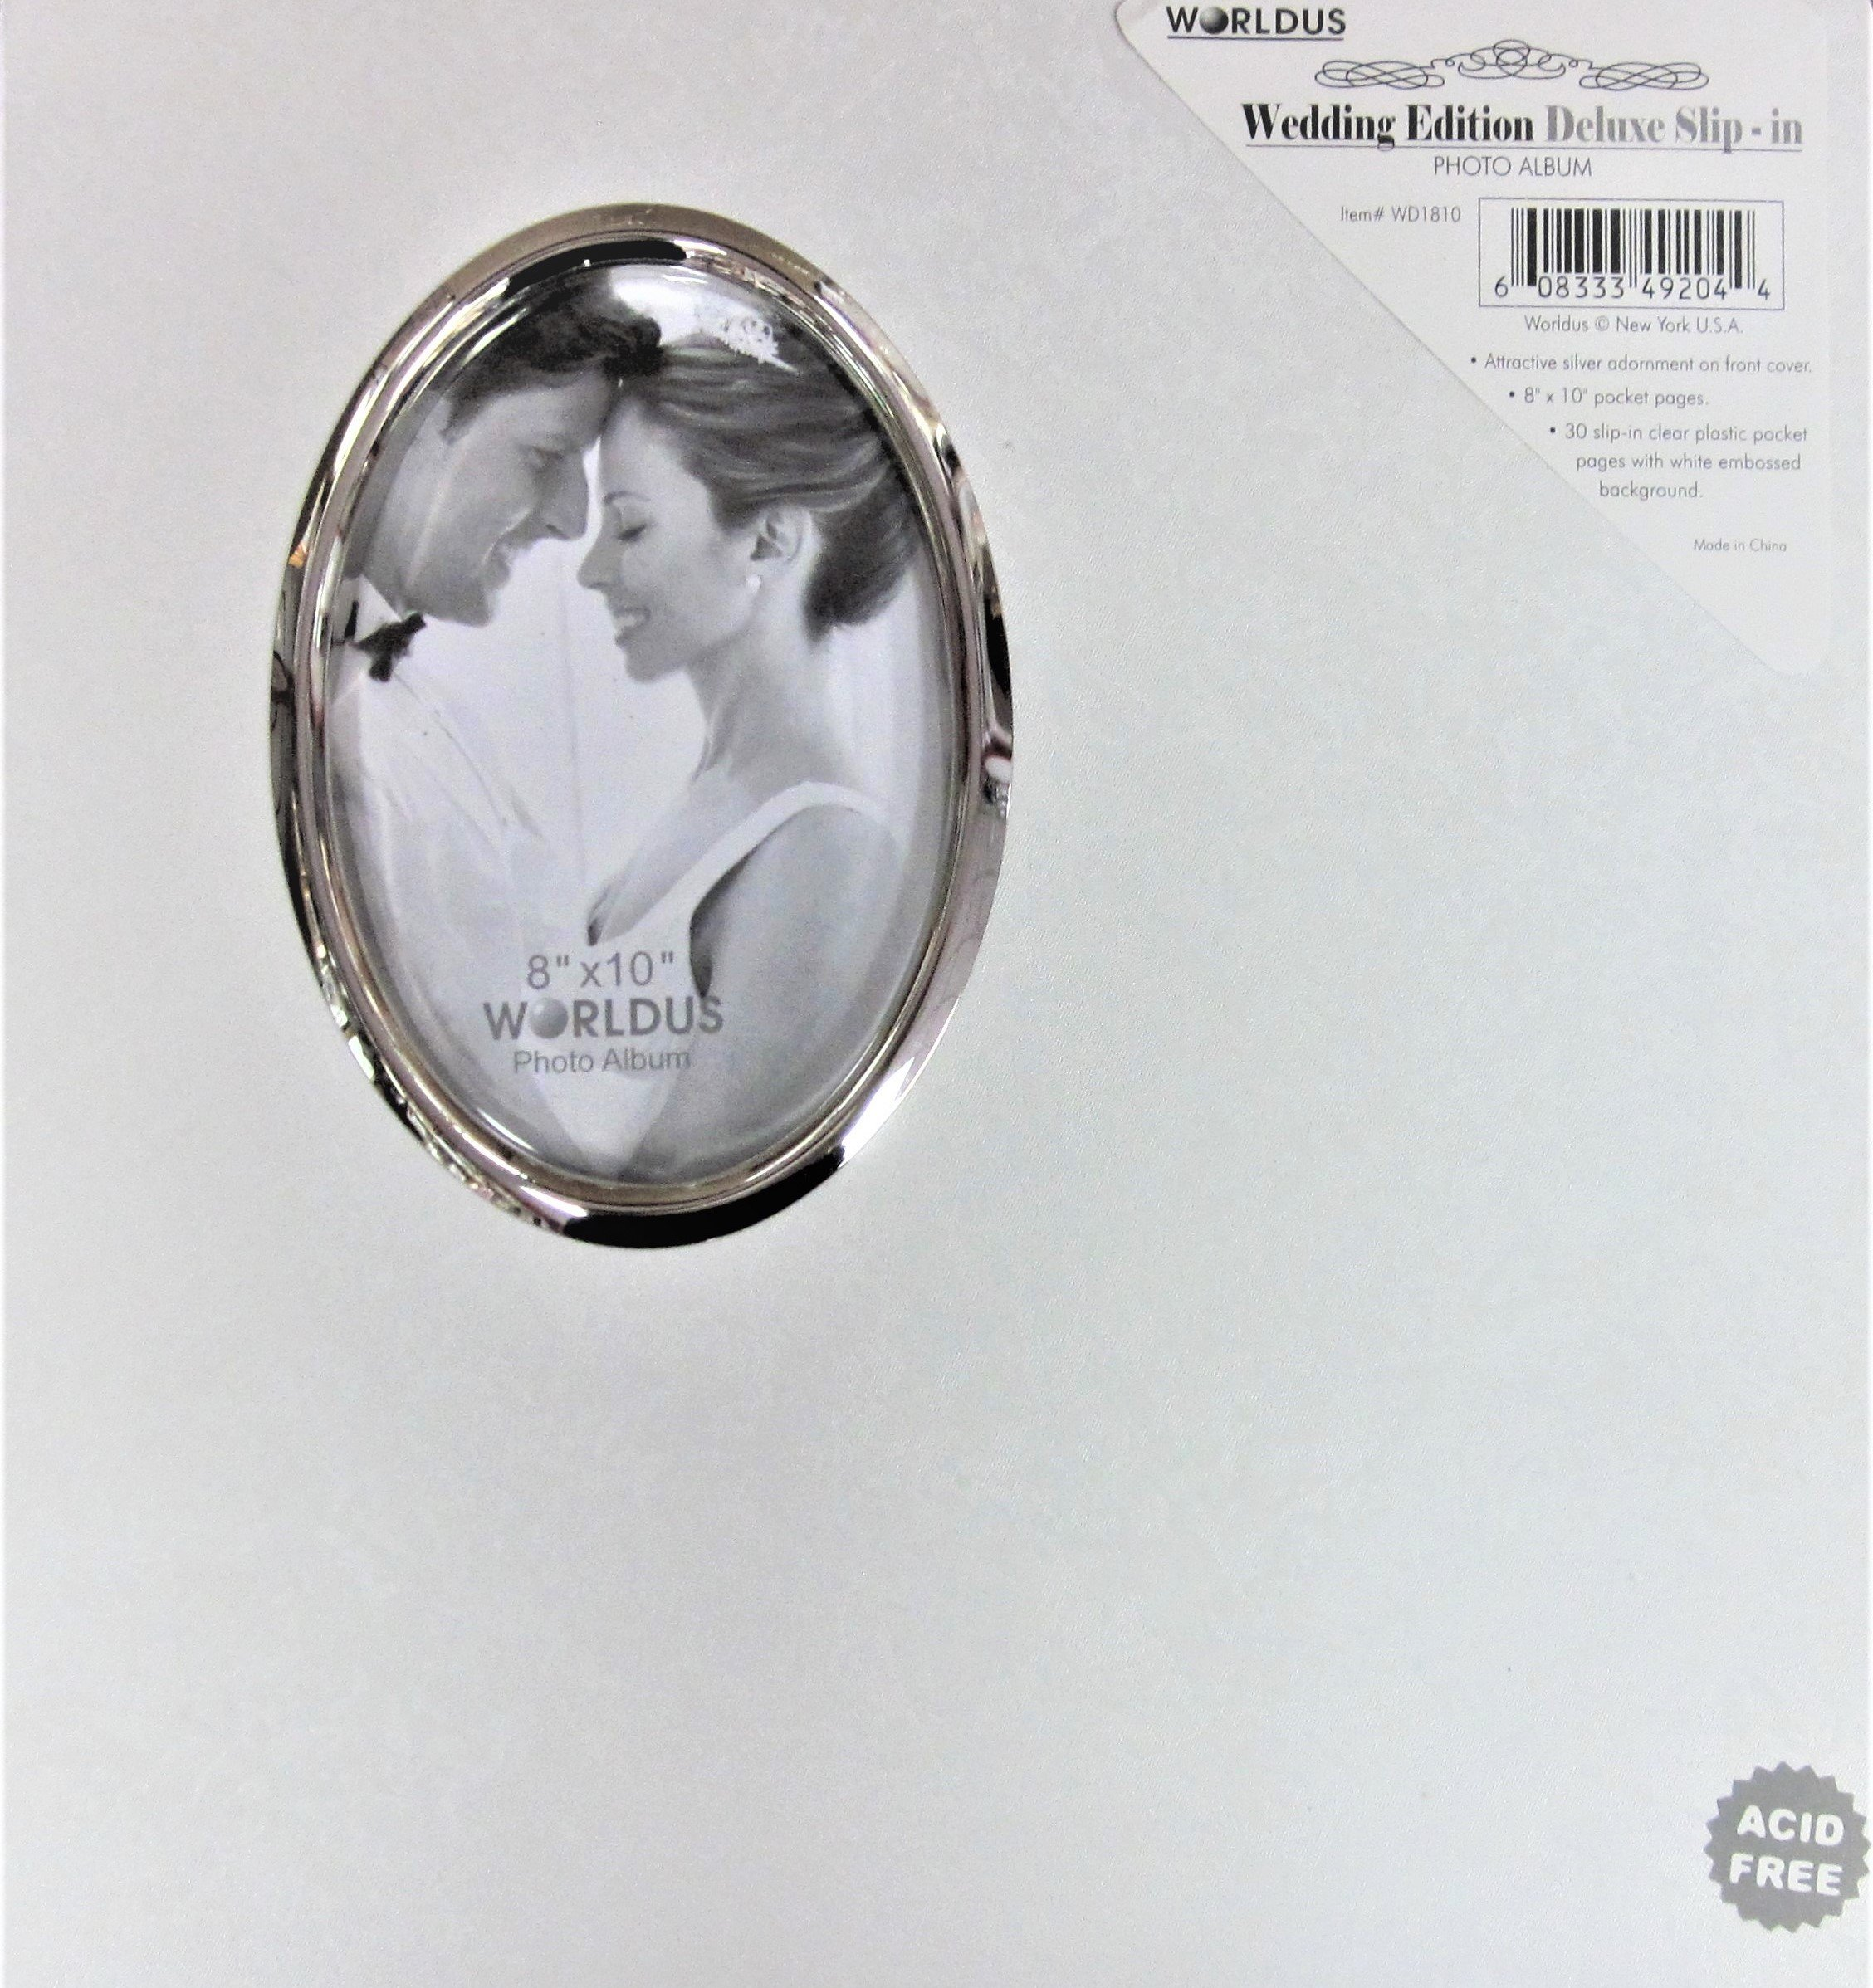 White Wedding Photo Album with Oval Opening on Cover- Holds 30 - 8x10 Photos by worldus